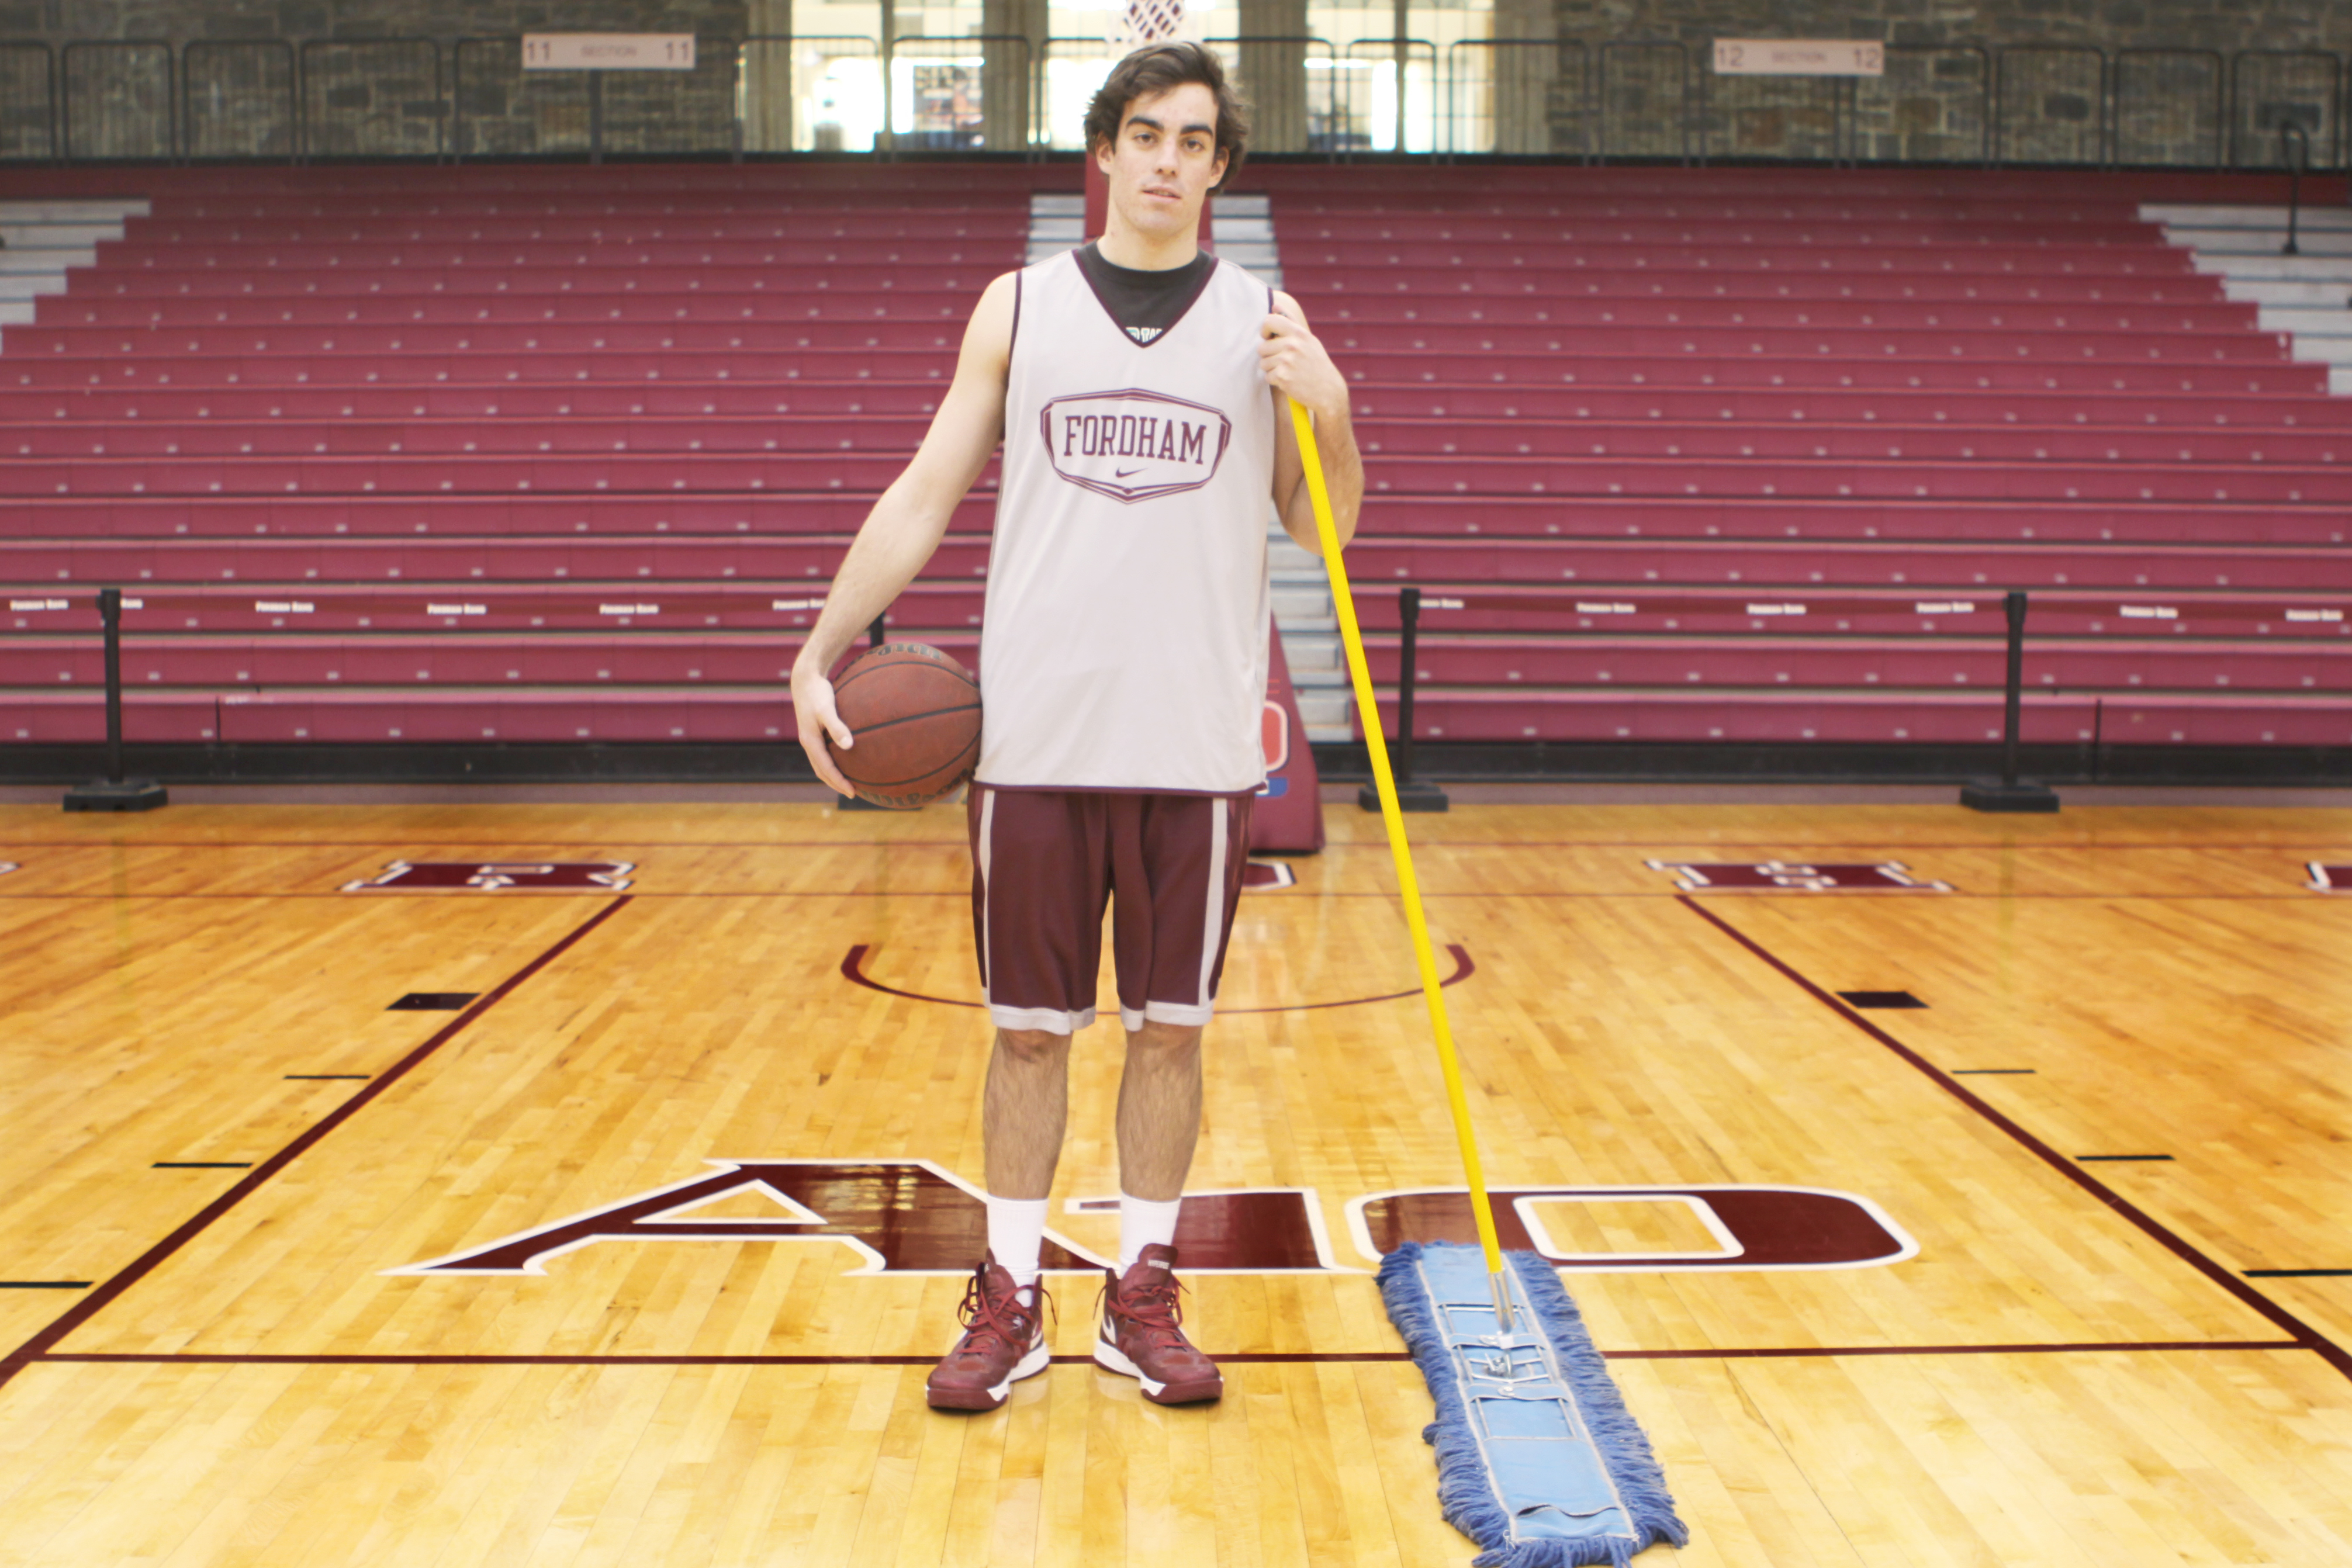 Elizabeth Zanghi/The Ram Leo Walsh, FCRH '14, worked as event staff, mopping the court at Fordham basketball games before joining the team.